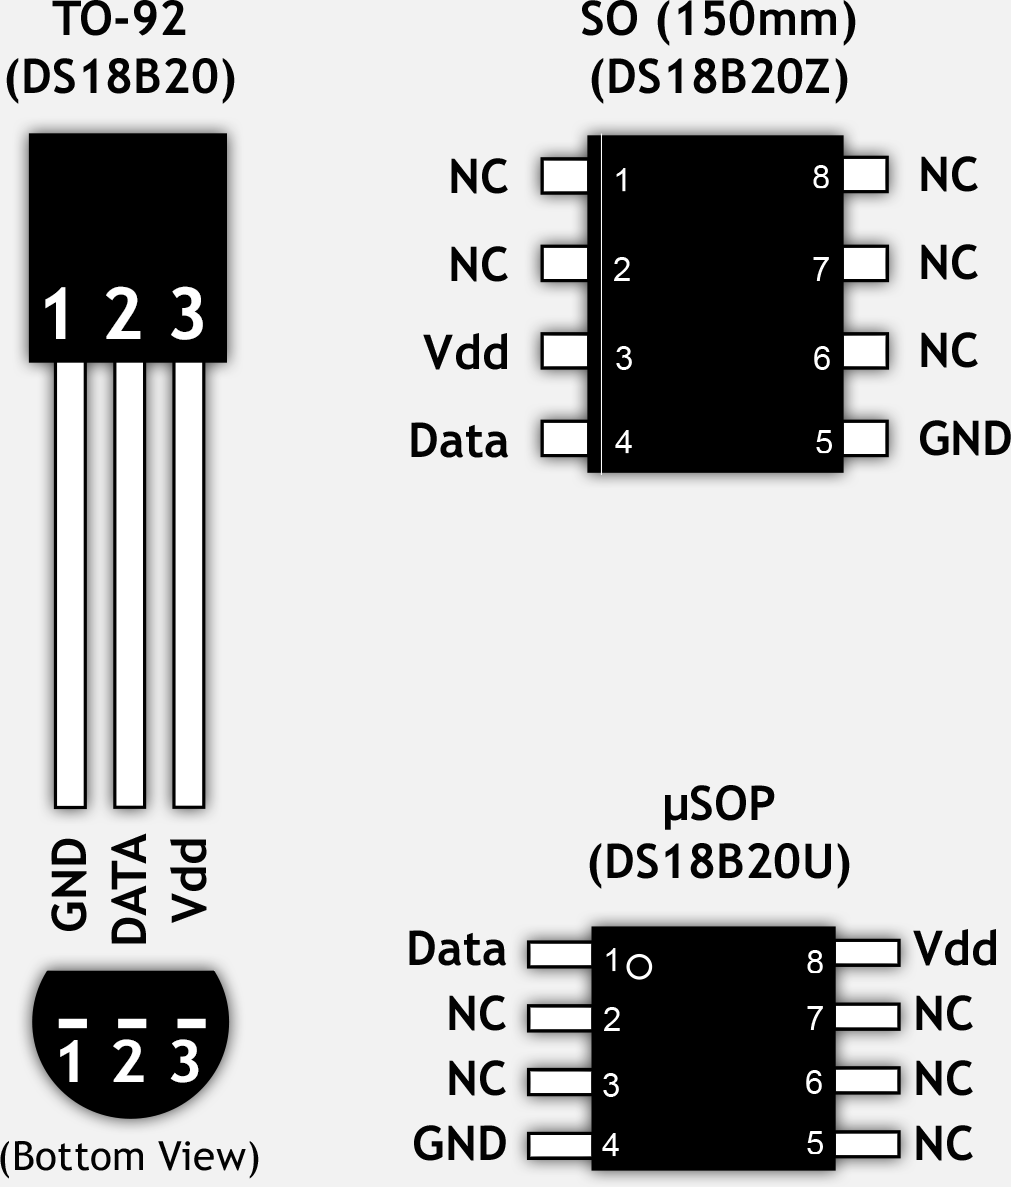 WRG-9867] 8 Pin Temperature Controller Wiring Diagram on